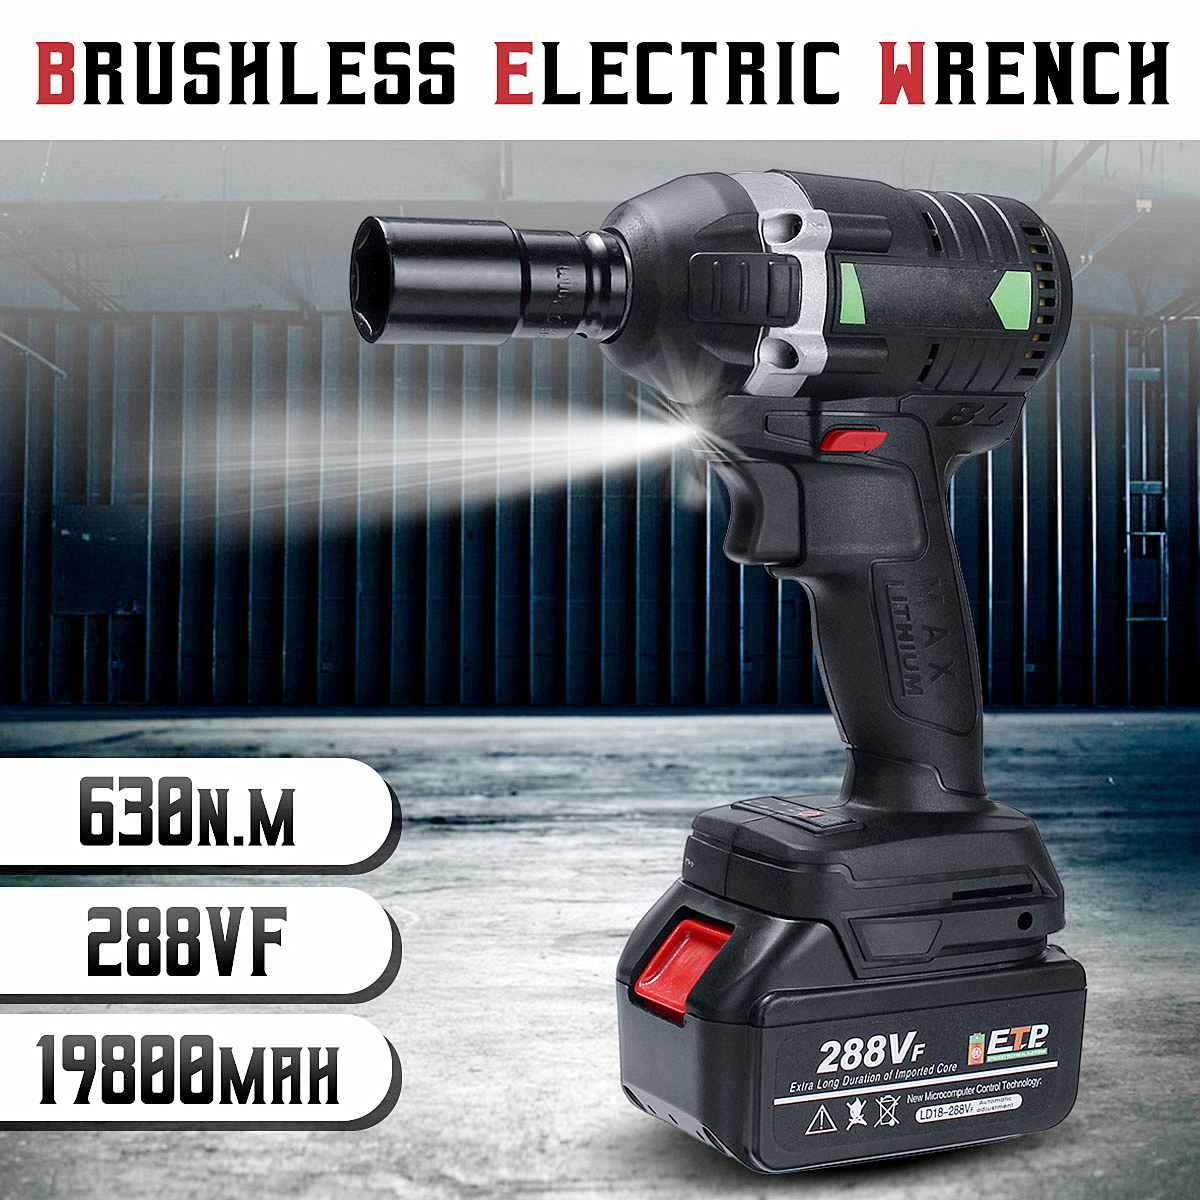 110-240V 630N.m 288VF Cordless Electric Impact Wrench Electric Wrench Brush with 1x Li-ion Battery Power Tools